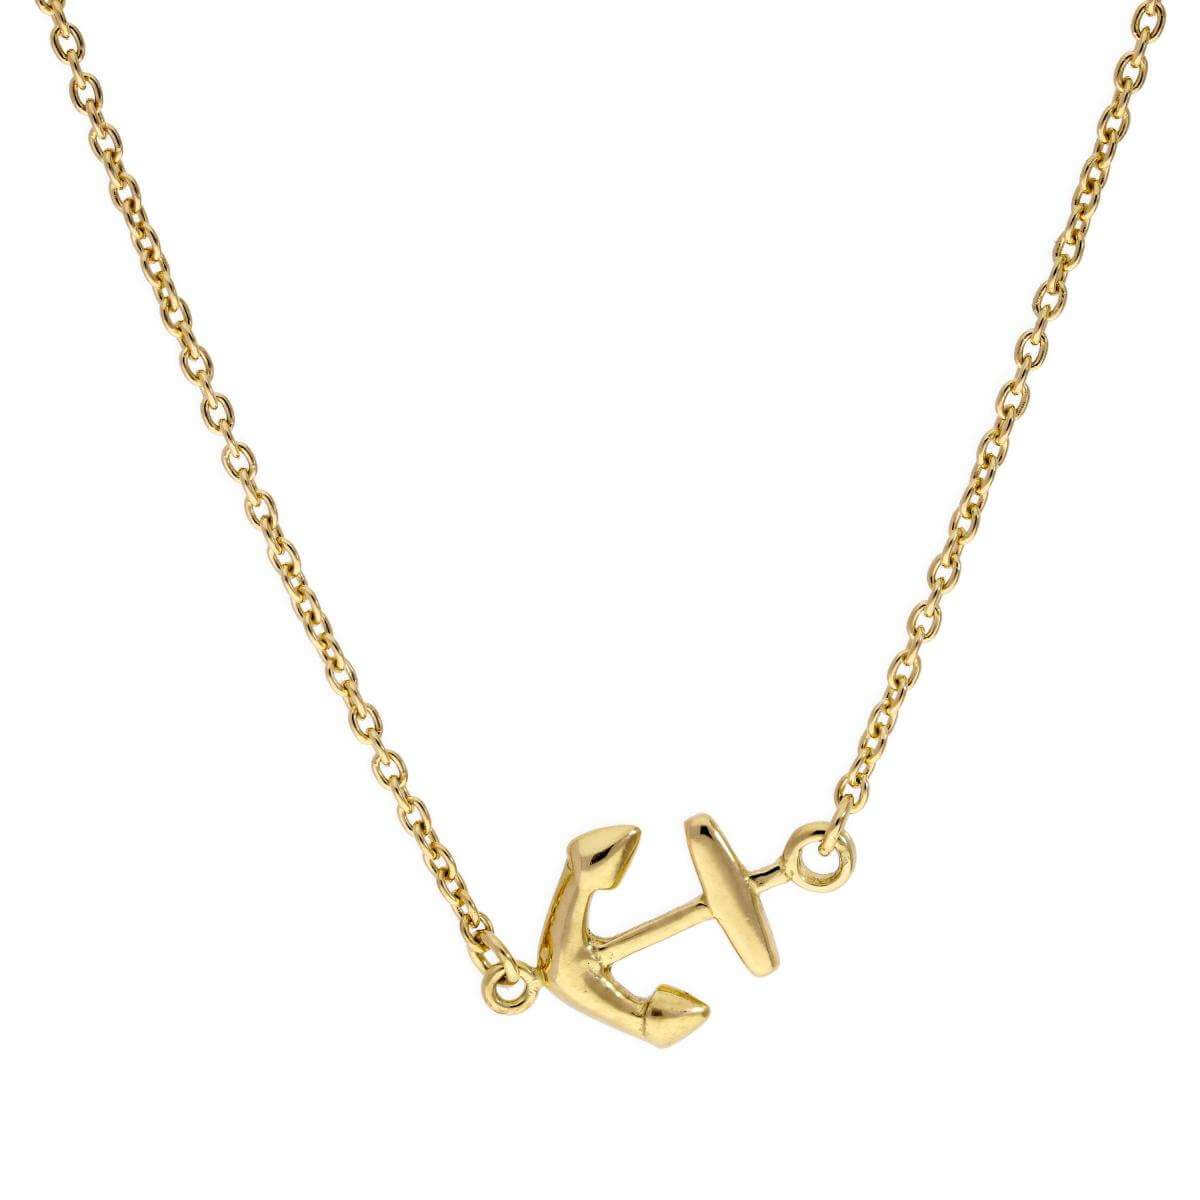 Gold Plated Sterling Silver Ship's Anchor 18 Inch Necklace